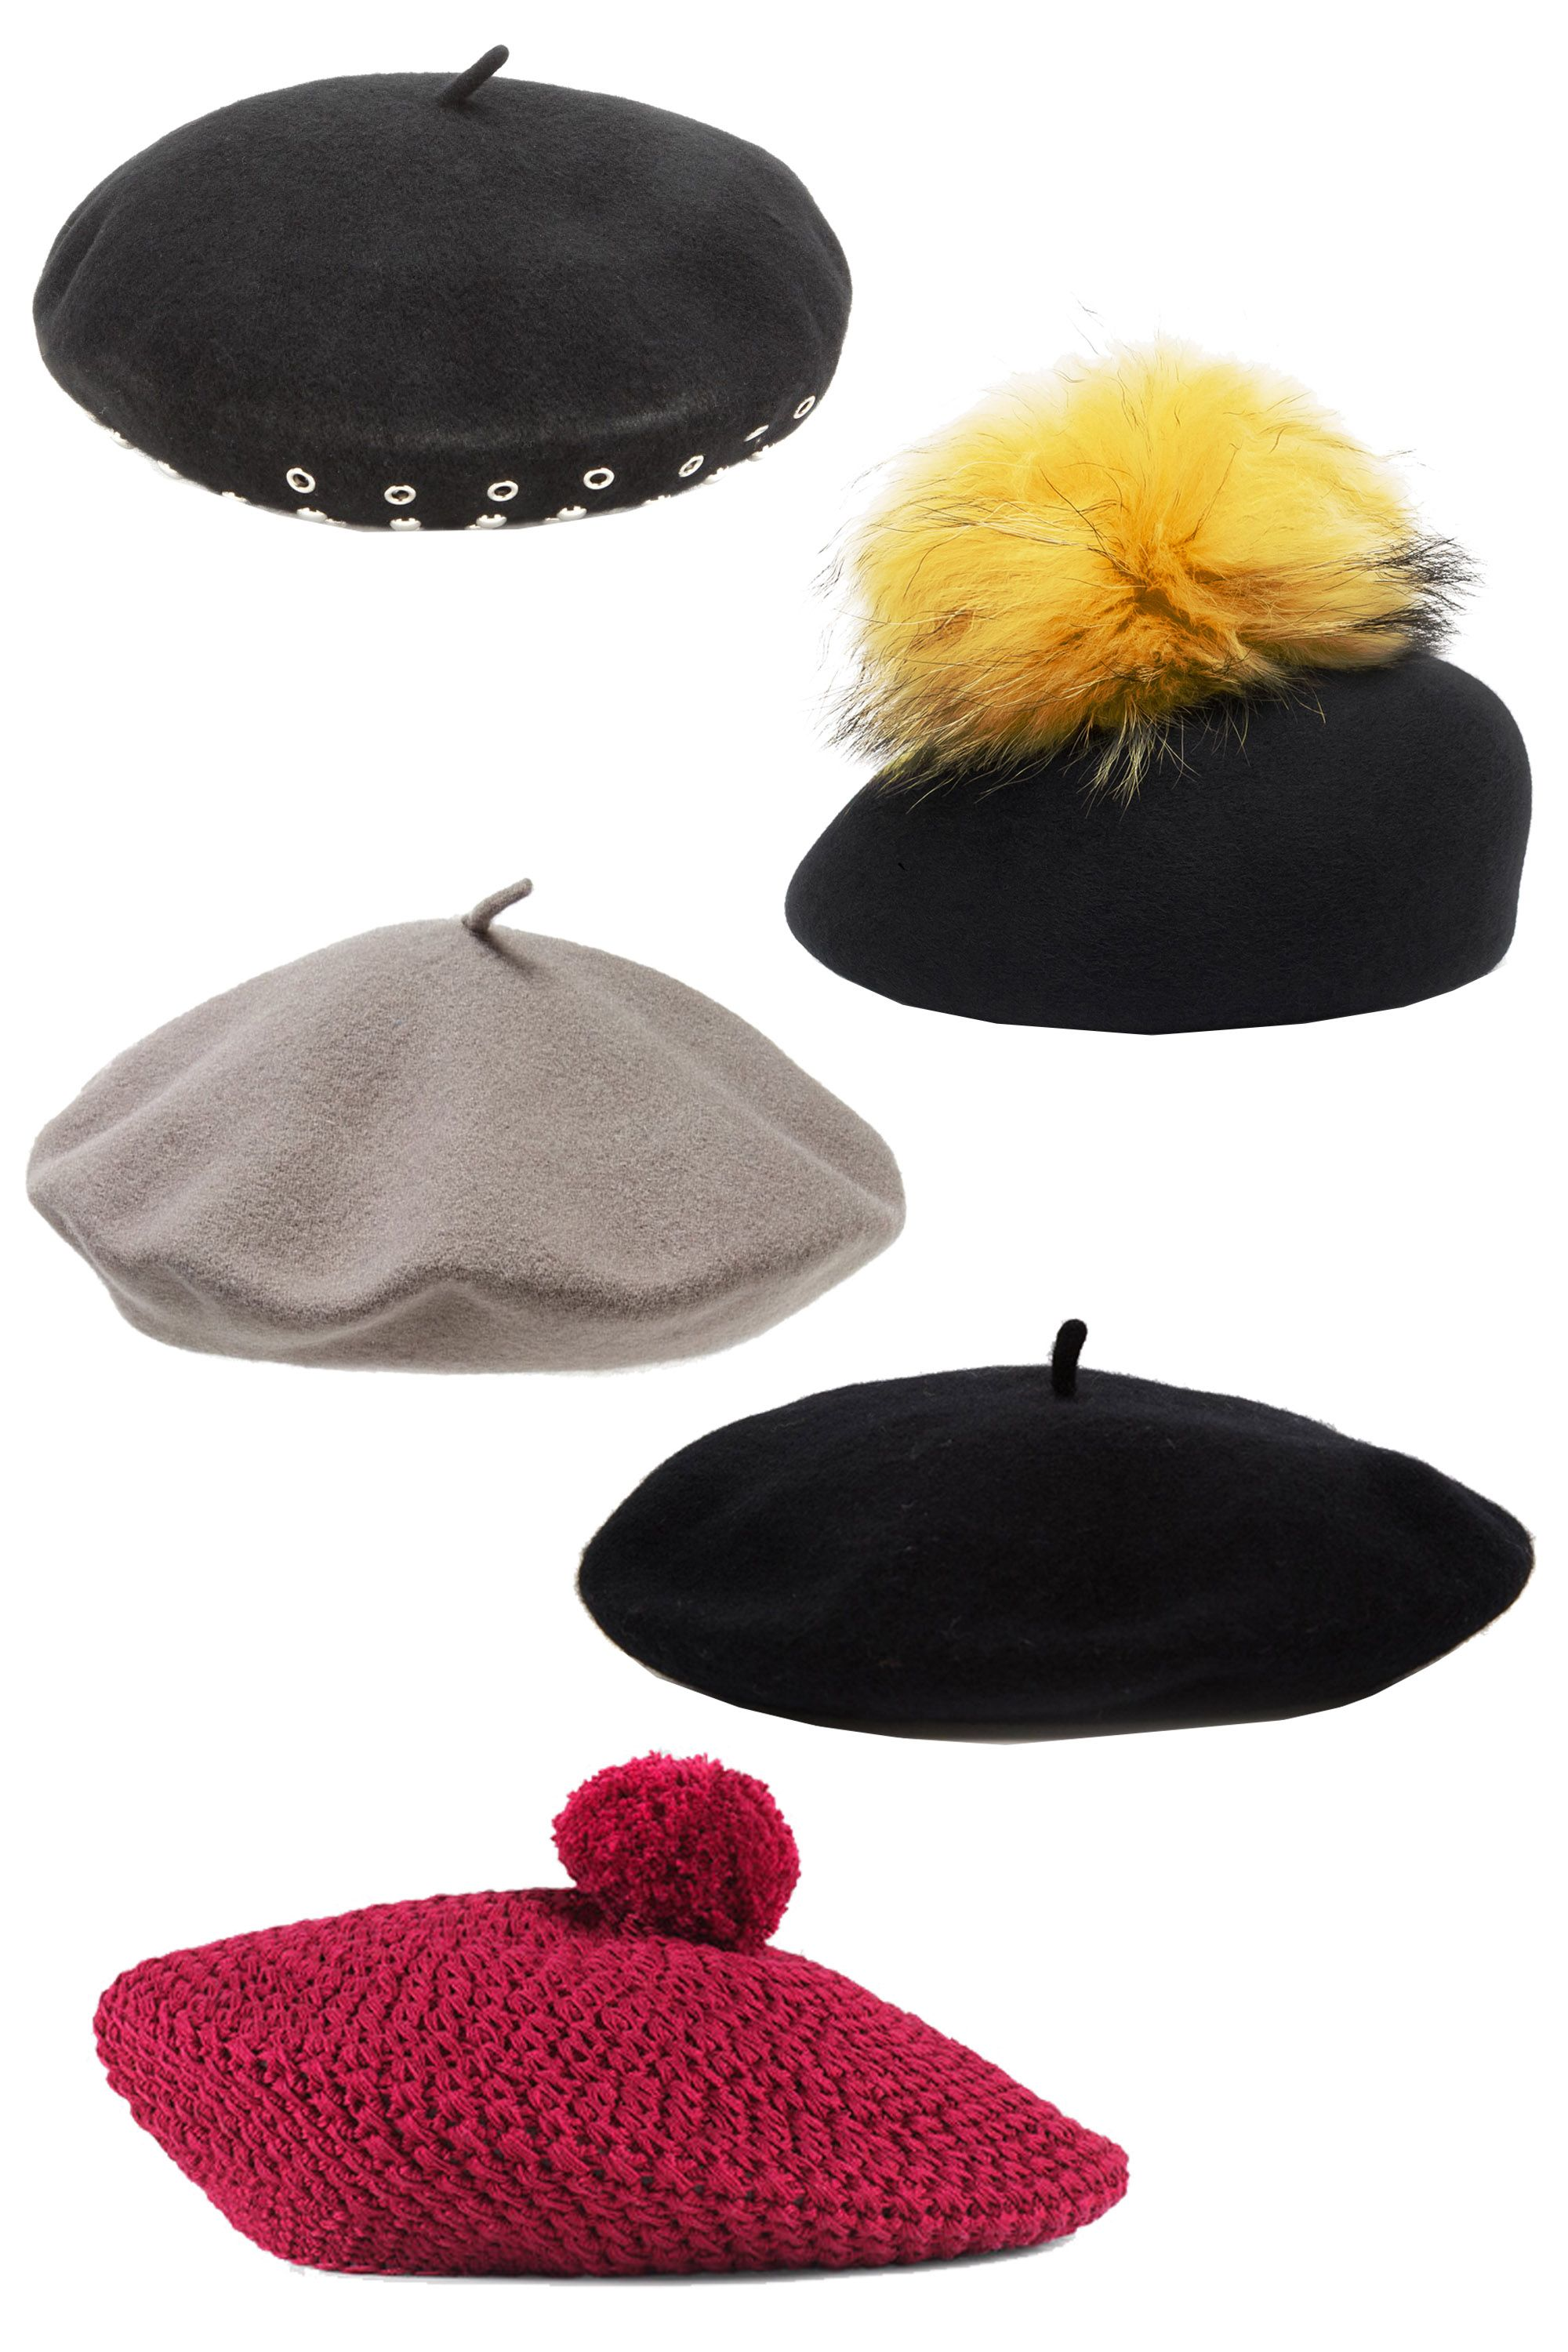 """<p>Speaking of Gucci, the brand's knitted pom hats have us reconsidering winter headgear. This season we're guessing street style stars will choose the beret over the beanie. </p><p><em>Marc by Marc Jacobs Number 1 Embellished Wool Beret, $281; <a href=""""http://www.mytheresa.com/en-us/number-1-embellished-wool-beret.html"""" target=""""_blank"""">mytheresa.com</a></em></p><p><em>Eugenia Kim Coco, $203; <a href=""""http://www.eugeniakim.com/coco-1/#.VrjxtpM11bw"""" target=""""_blank"""">eugeniakim.com</a></em></p><p><em>Parkhurst Classic Wool Beret, $24; <a href=""""http://shop.nordstrom.com/s/parkhurstclassic-wool-beret/4173964?origin=keywordsearch-personalizedsort&contextualcategoryid=0&fashionColor=Graphite&resultback=353"""" target=""""_blank"""">nordstrom.com</a></em></p><p><em>ASOS Wool Beret, $21; <a href=""""http://us.asos.com/ASOS-Wool-Beret/1758z5/?iid=5558430&clr=Black&SearchQuery=beret&pgesize=2&pge=0&totalstyles=2&gridsize=3&gridrow=1&gridcolumn=2&mporgp=L2Fzb3MvYXNvcy13b29sLWJlcmV0L3Byb2Qv"""" target=""""_blank"""">asos.com</a></em></p><p><em>Gucci Knit Cotton hat, $410; </em><a href=""""https://www.gucci.com/us/en/pr/men/mens-accessories/mens-hats-gloves/knit-cotton-hat-p-4110483G1116100?position=21&listName=ProductGridWComponent&categoryPath=Women/Womens-Accessories/Womens-Hats-Gloves"""" target=""""_blank""""><em>gucci.com</em></a></p>"""